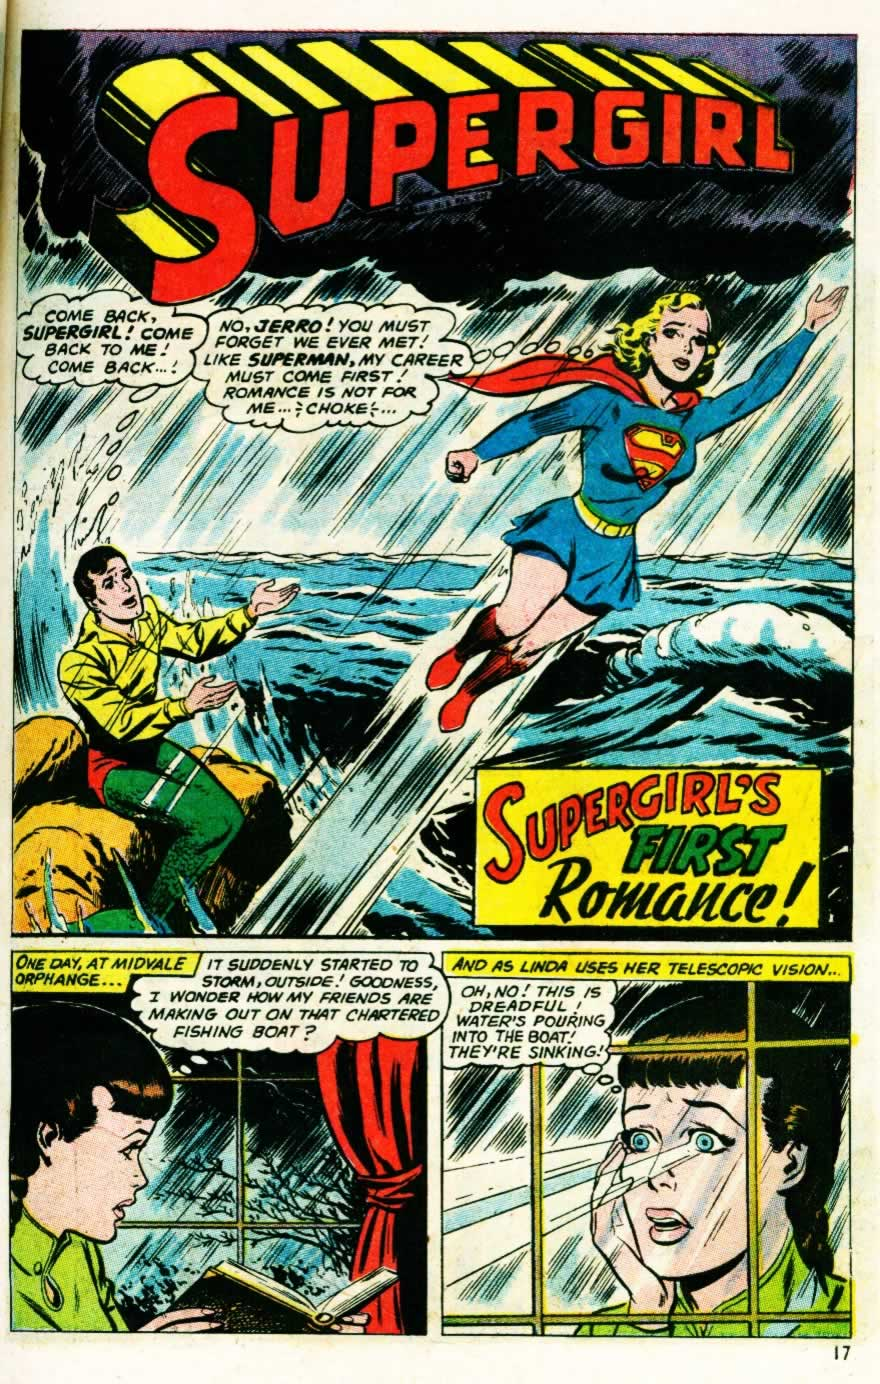 Supergirl's First Romance!